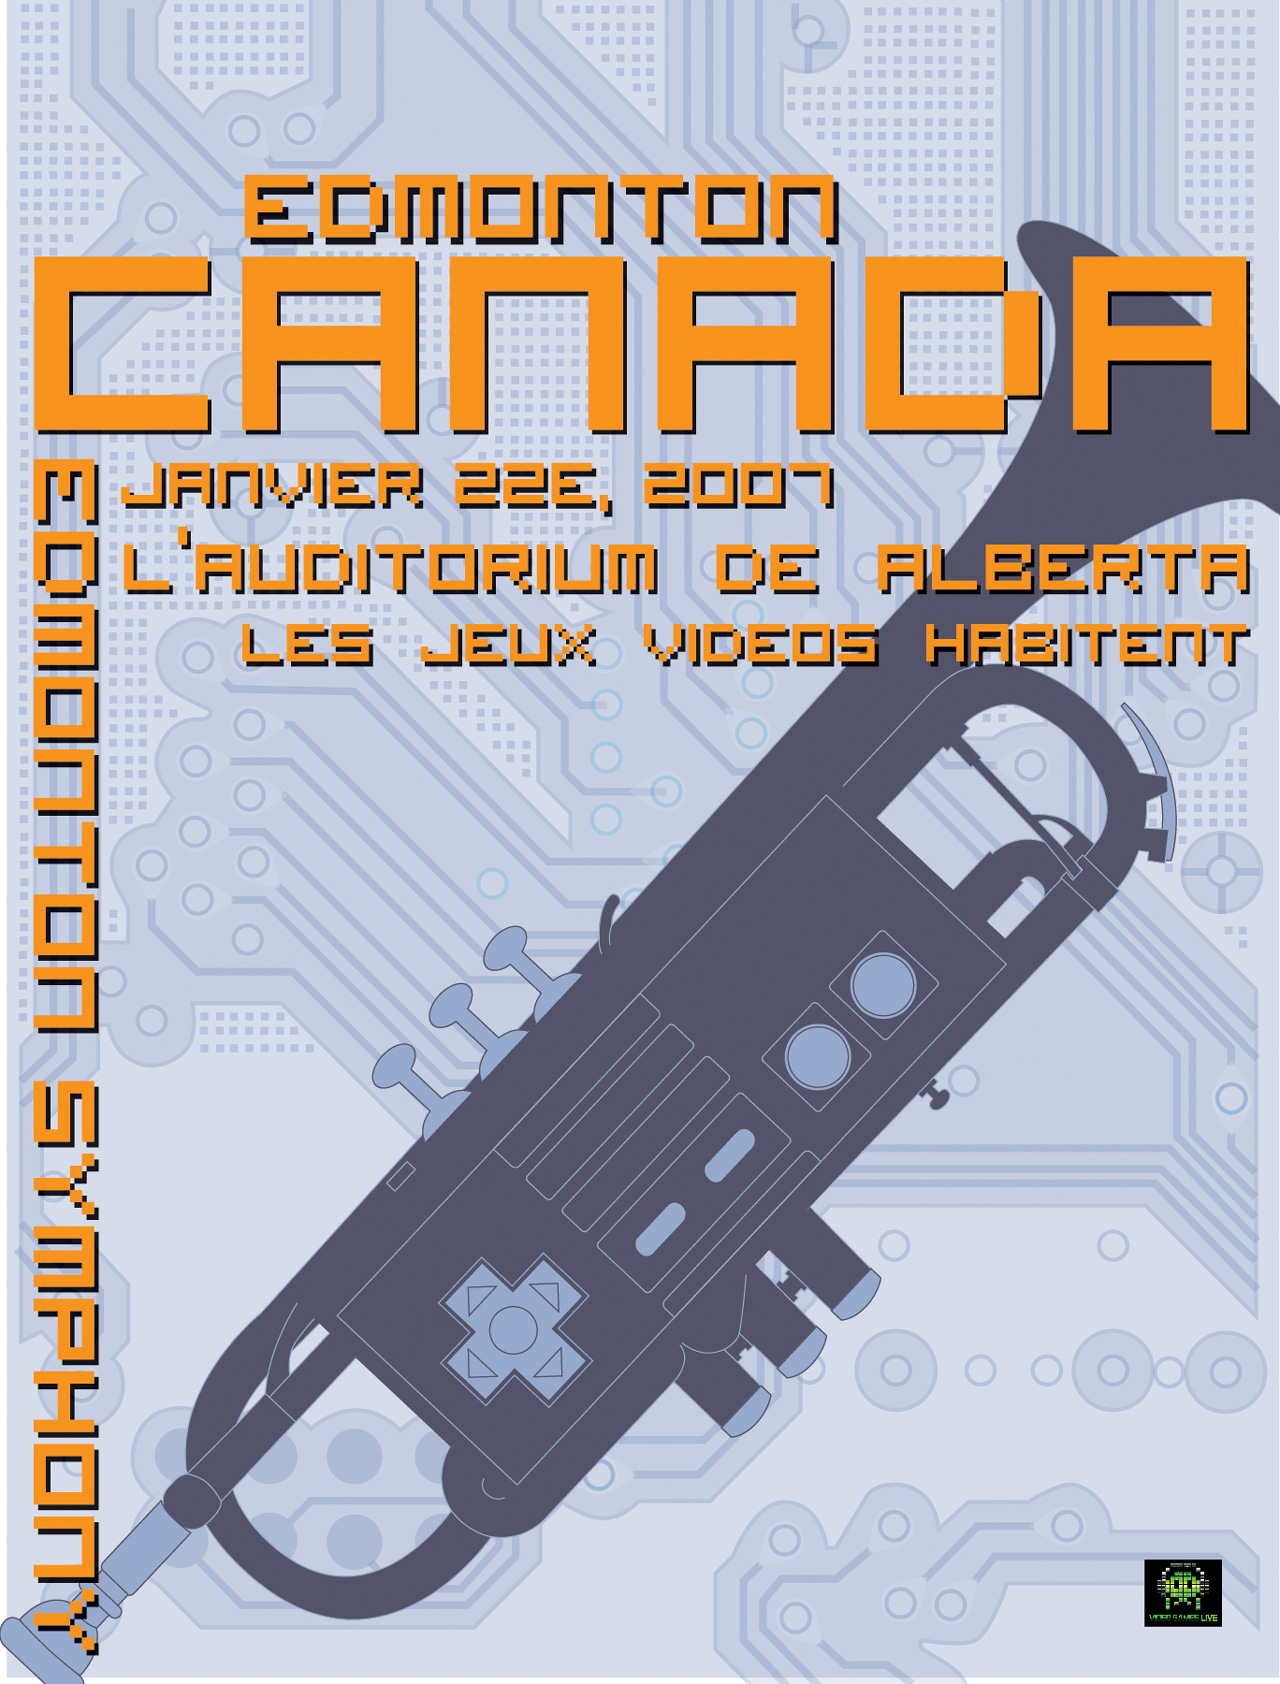 VGL Canada Poster